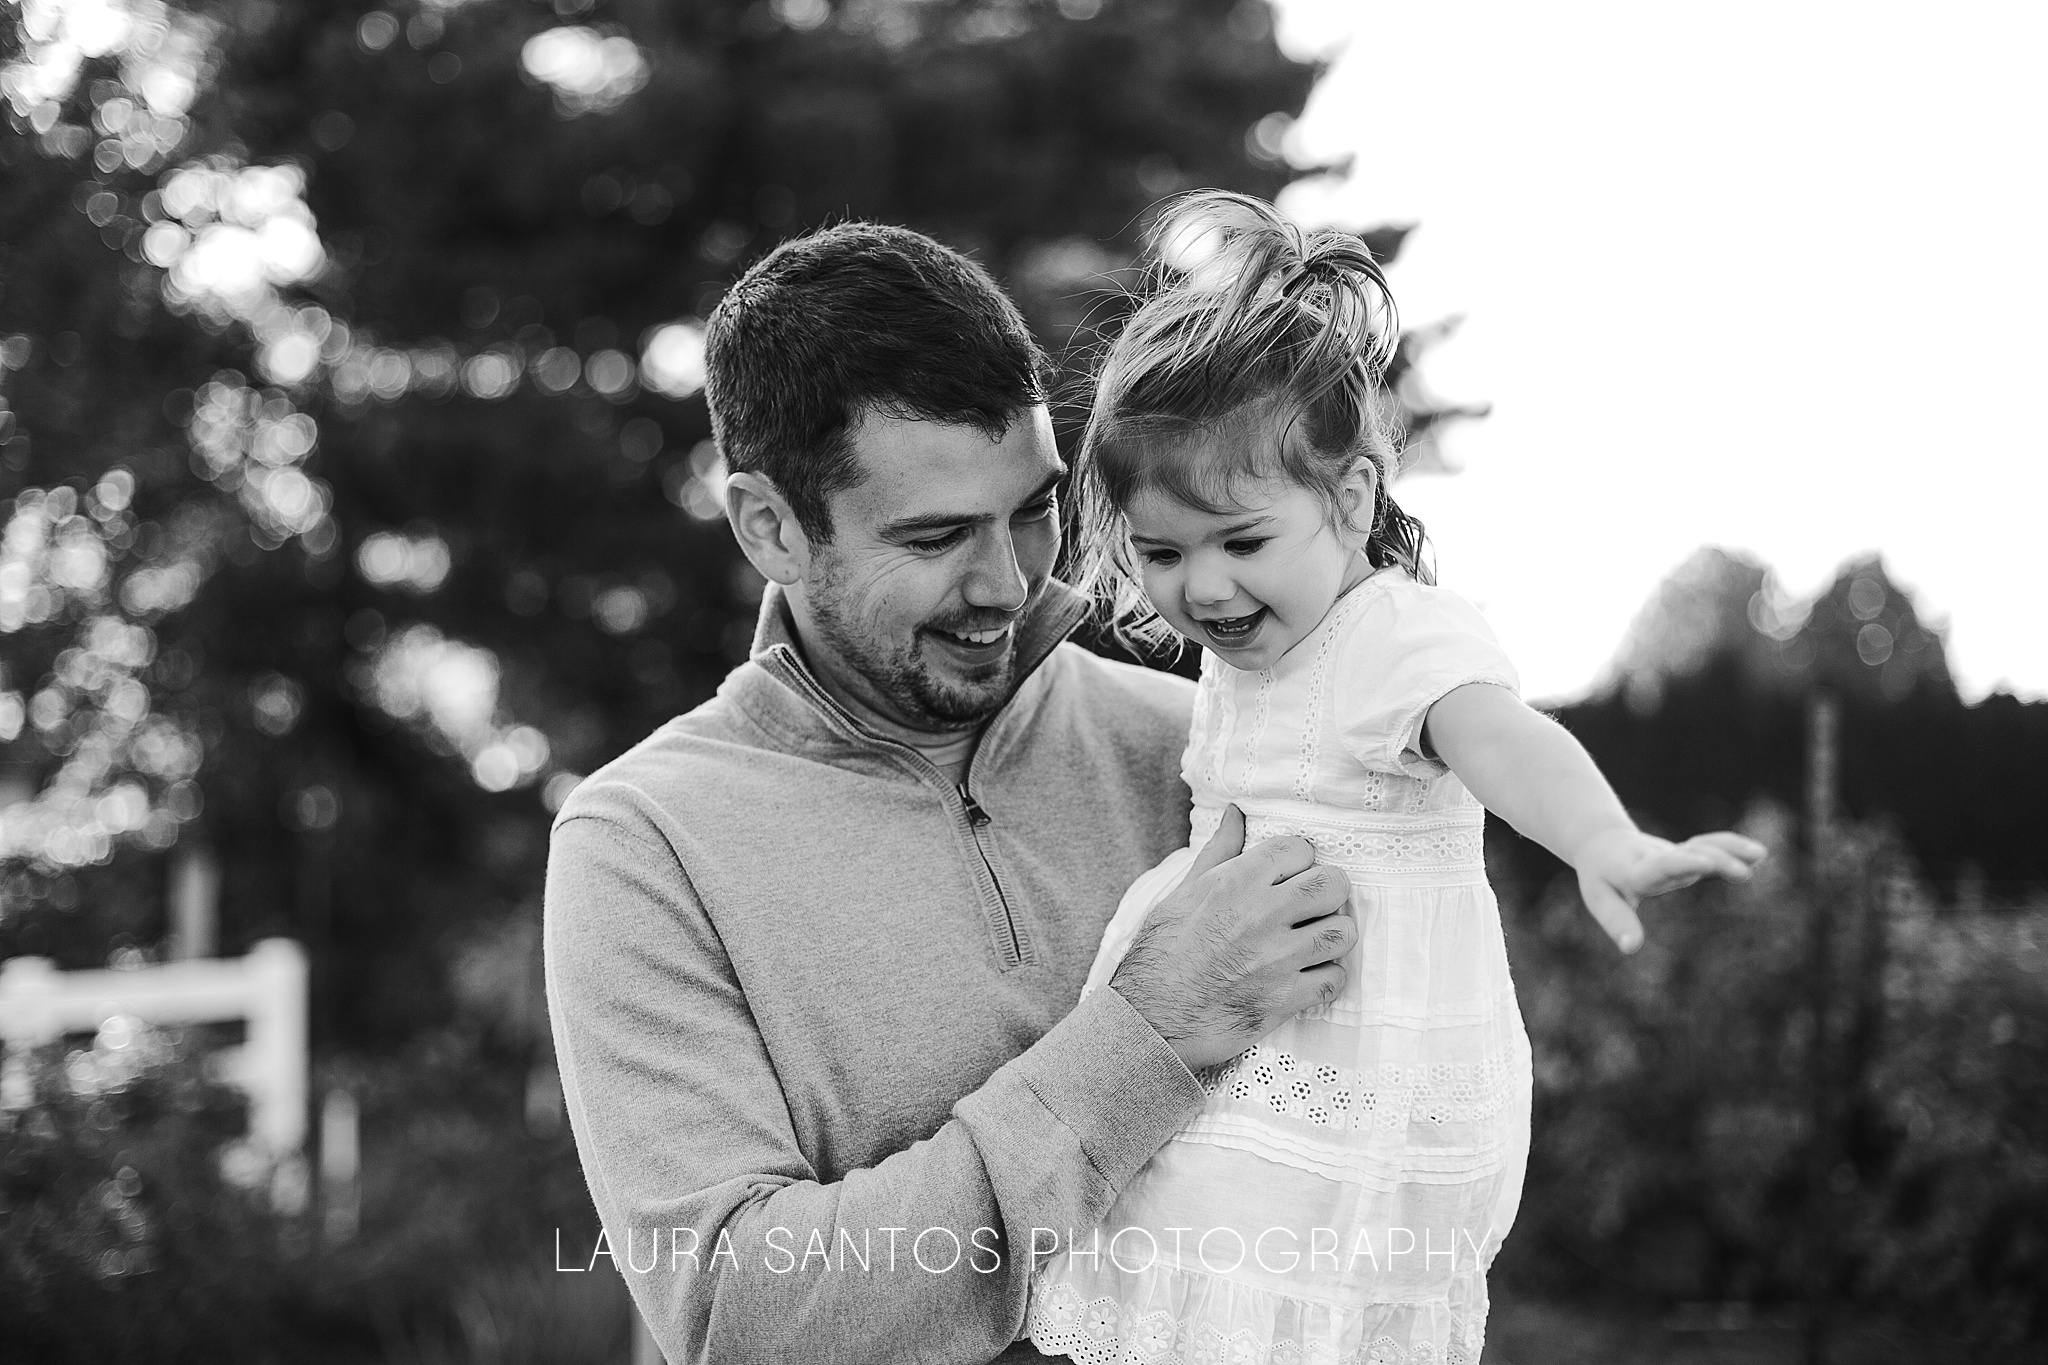 Laura Santos Photography Portland Oregon Family Photographer_0844.jpg